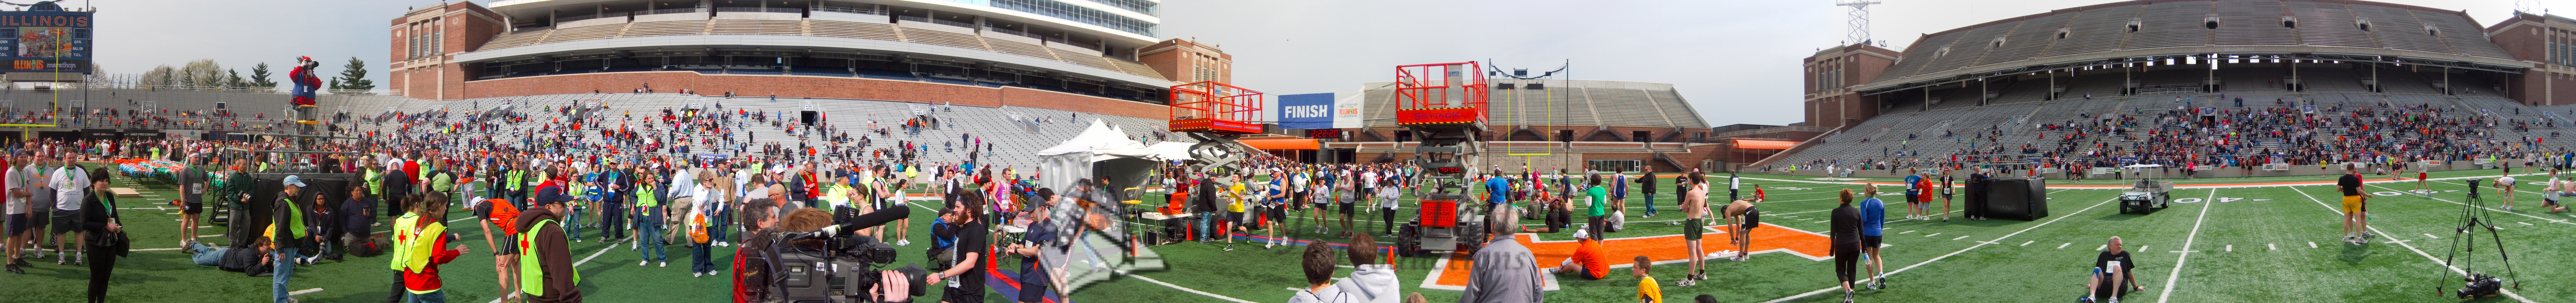 p138-1-p138-8half  Finish Time 2:22:20 Illinois Marathon 2011 Memorial Stadium Finish Line